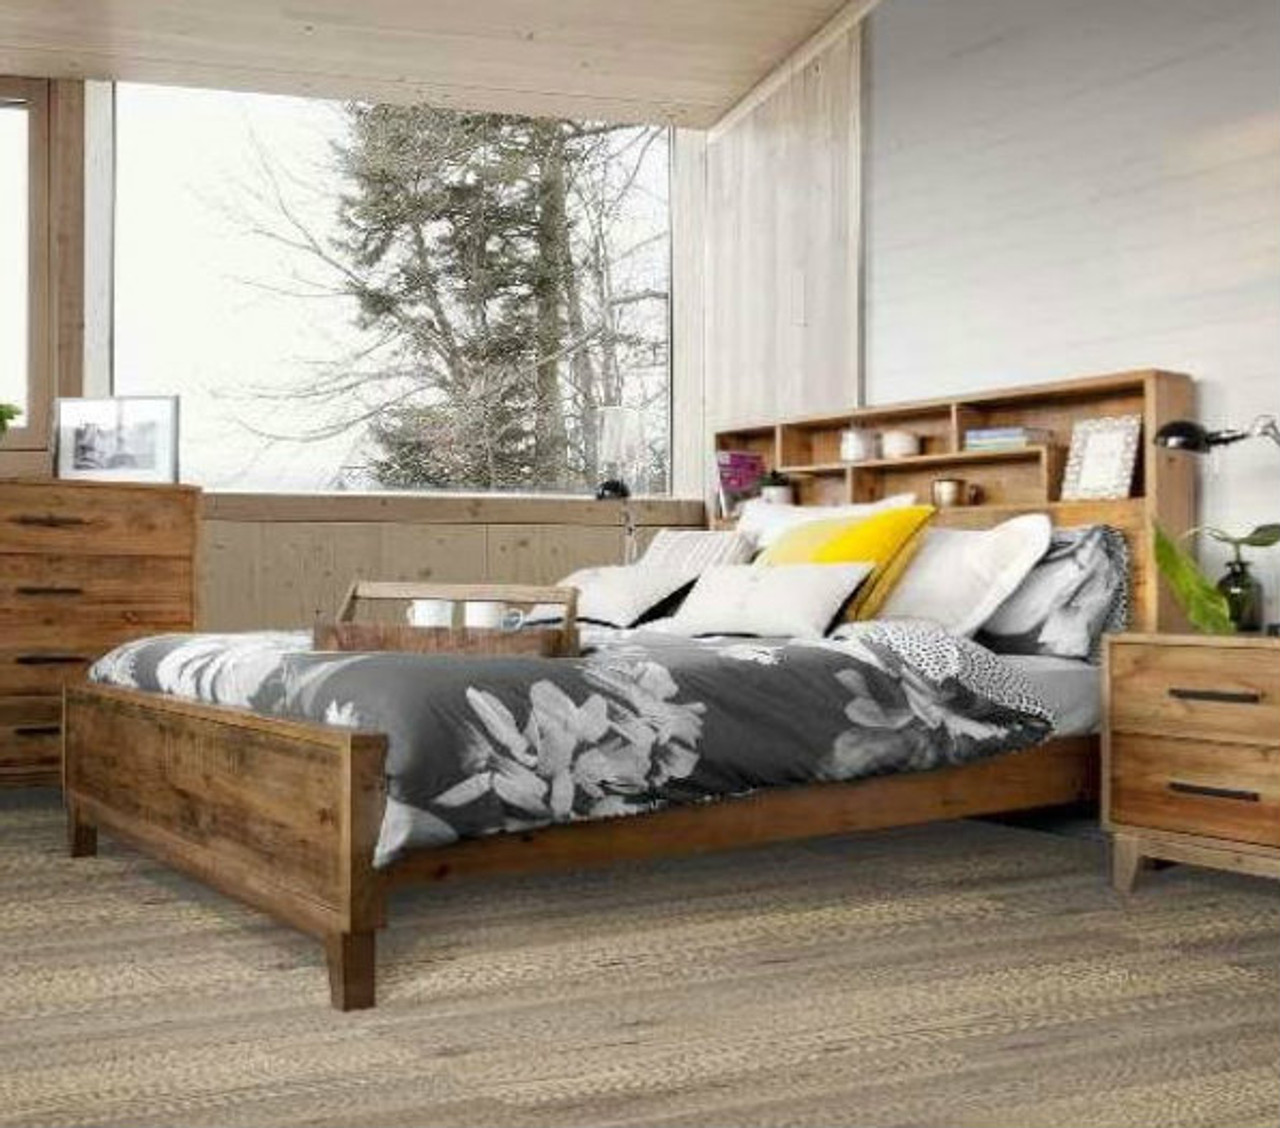 Picture of: King Antarctica Bed With Bookcase Storage Headboard Rustic My Furniture Store Furniture And Bedding Super Store Australia